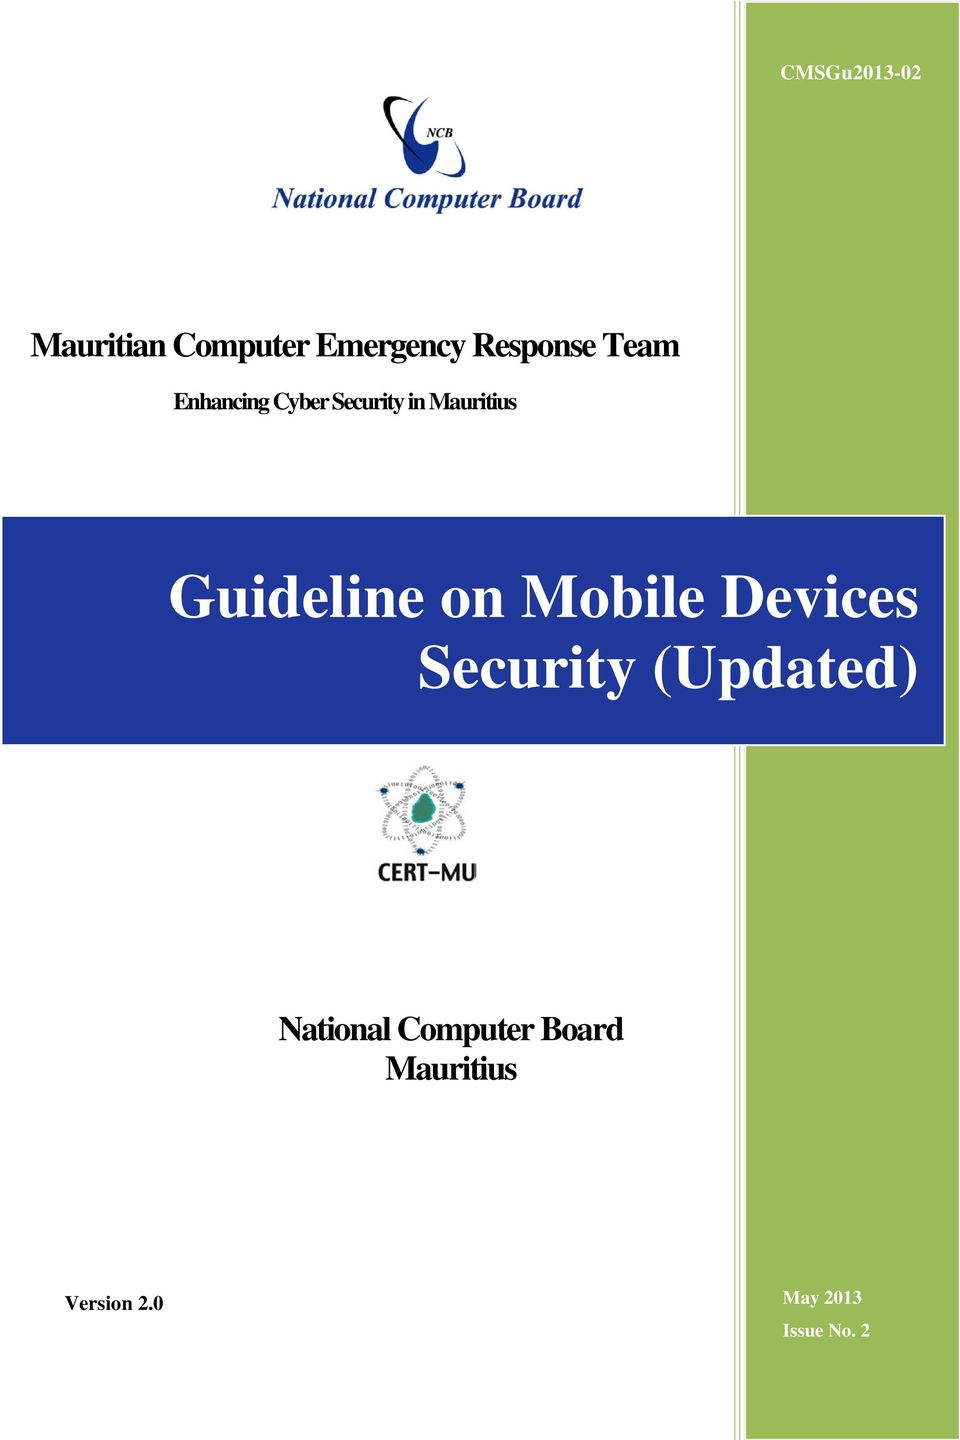 Guideline on Mobile Devices Security (Updated)